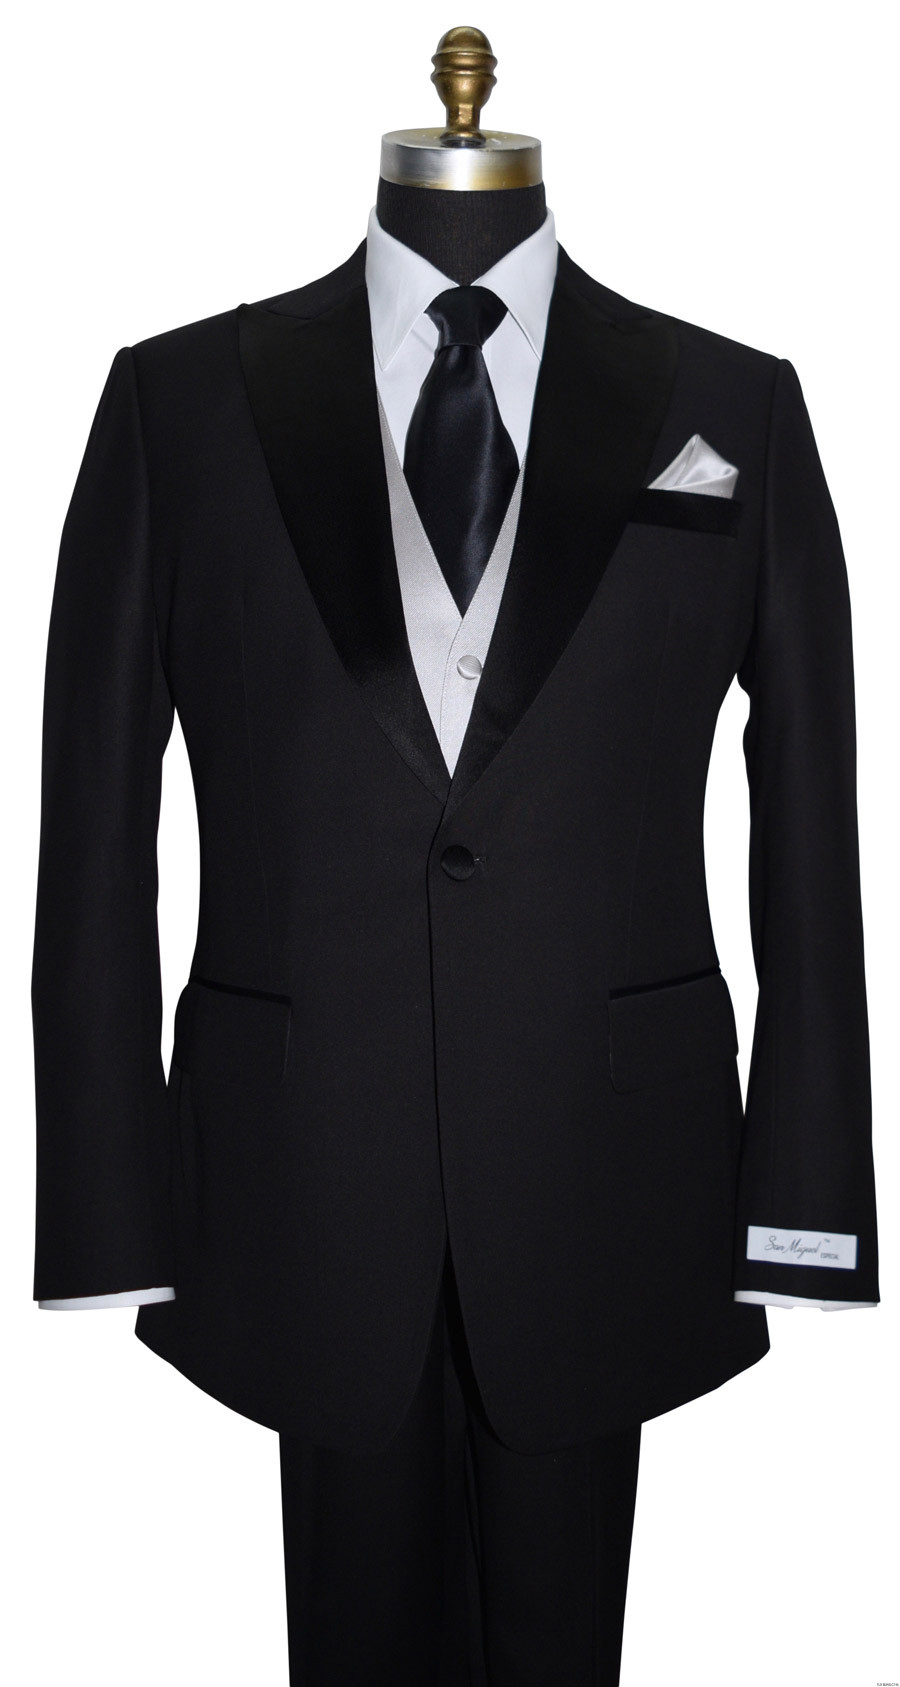 classic black silk long tie with moonlight vest and pocket handkerchief by San Miguel Formals